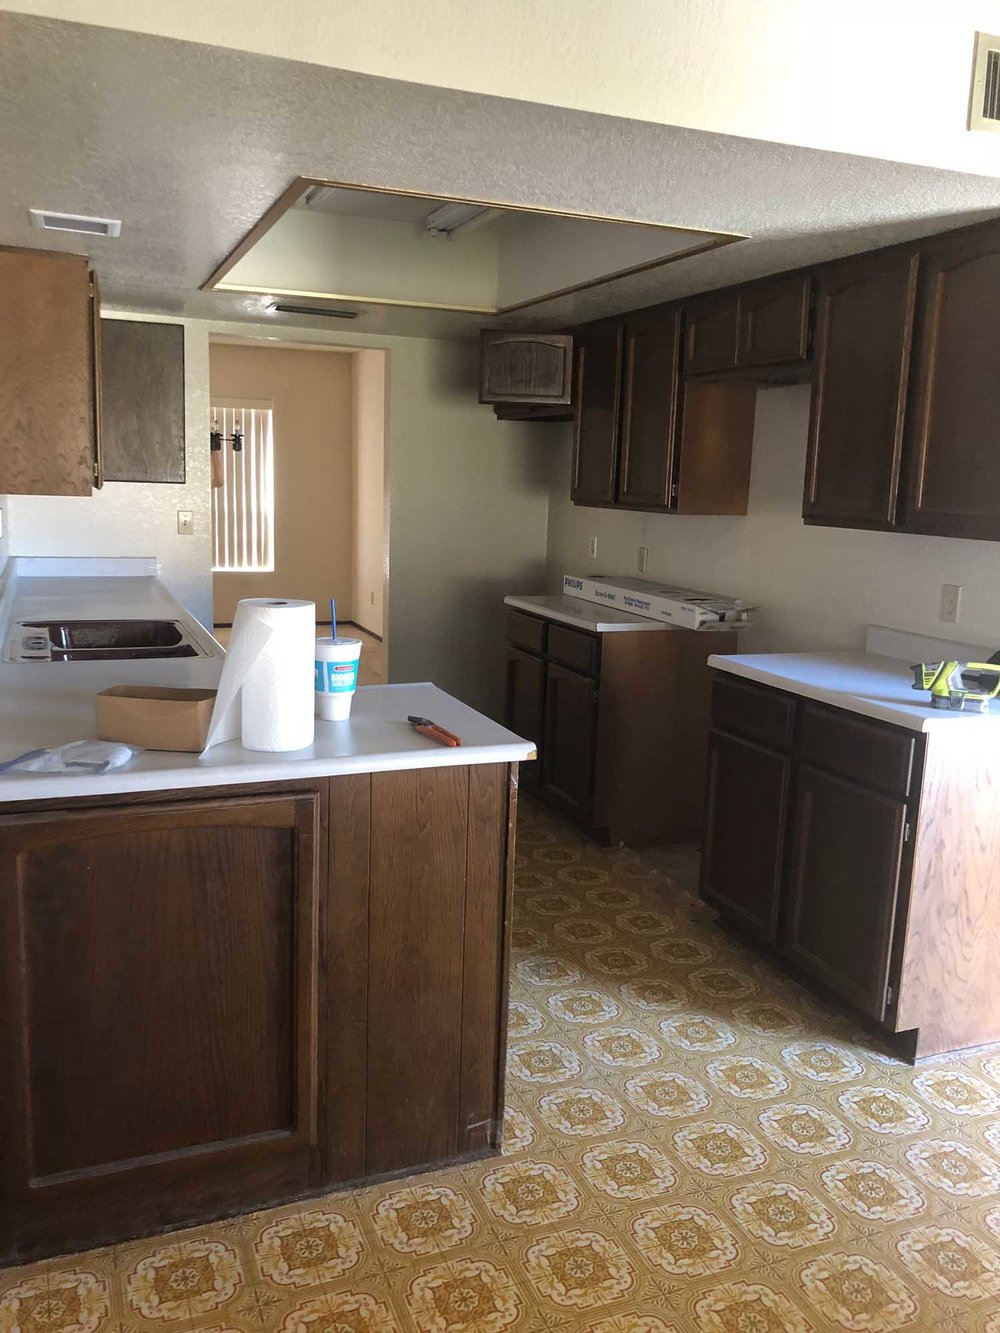 Old design kitchen with cabinets